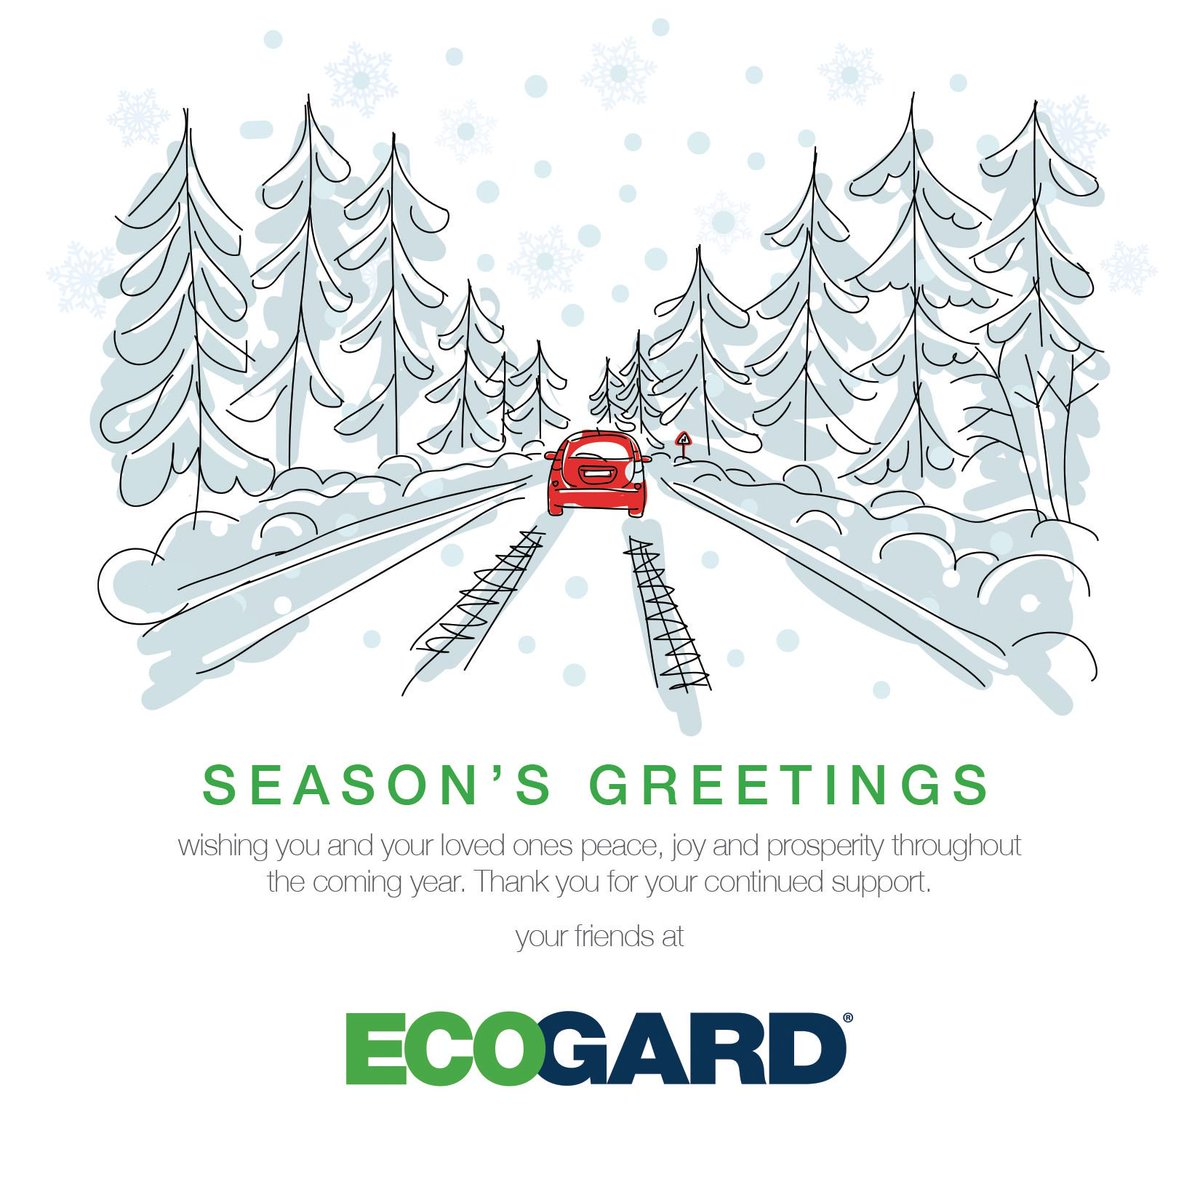 Ecogard On Twitter Seasons Greetings Wishing You And Your Loved